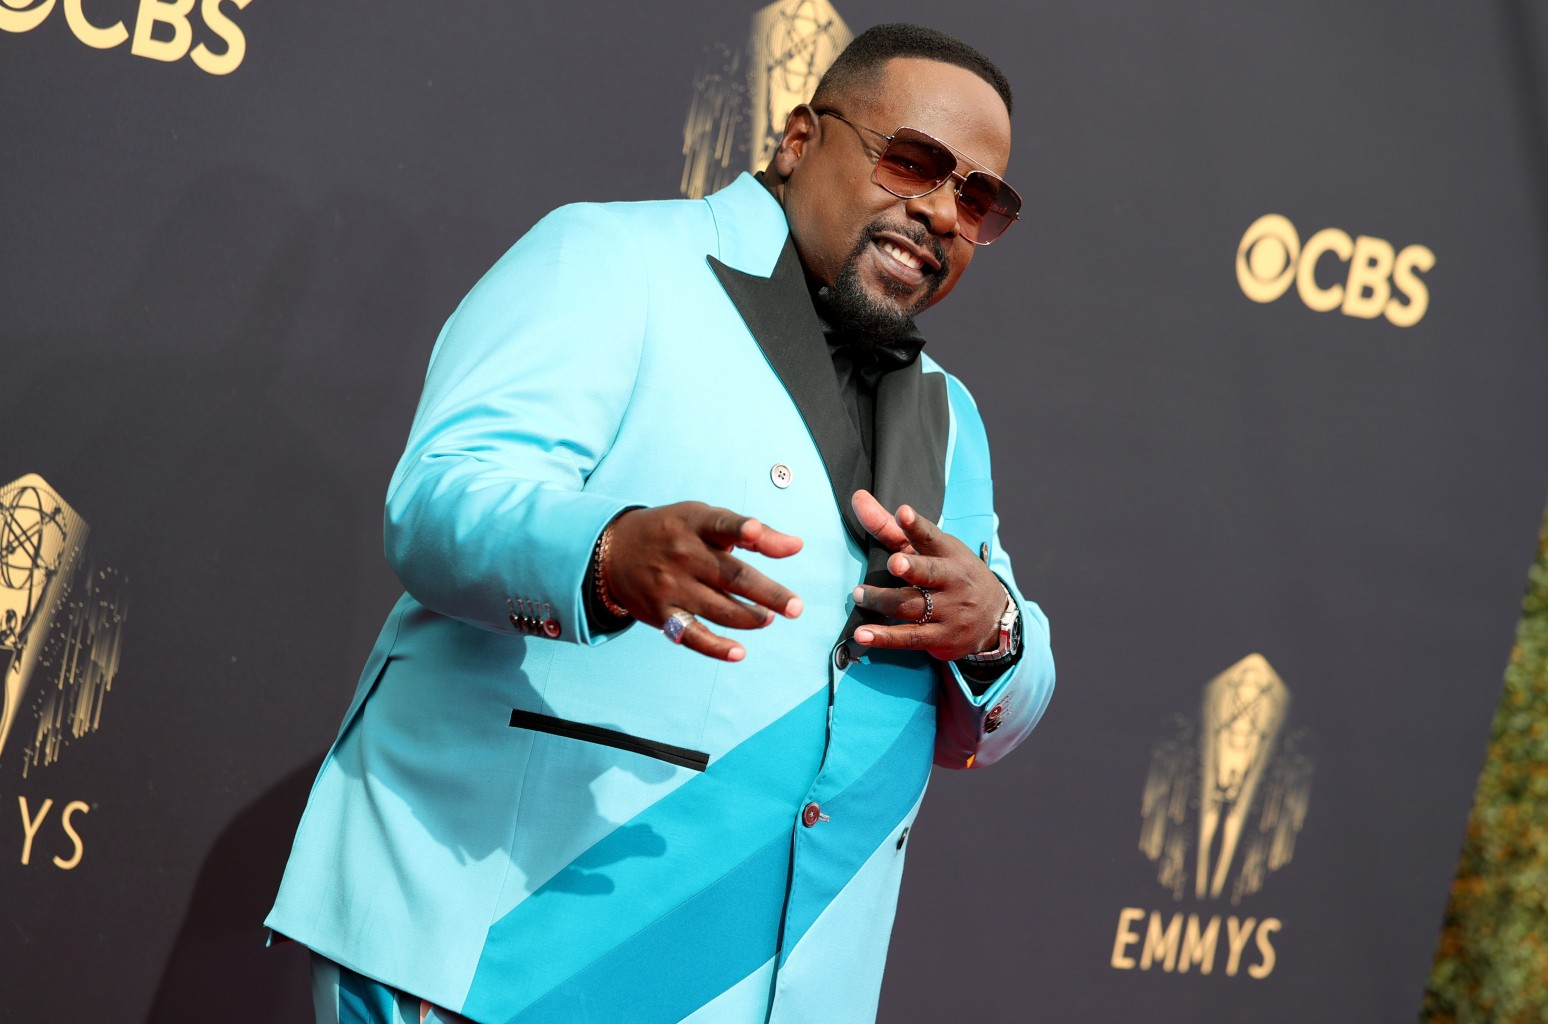 2021 Emmys: Cedric the Entertainer's TV-Inspired Cover of Biz Markie's 'Just a Friend'